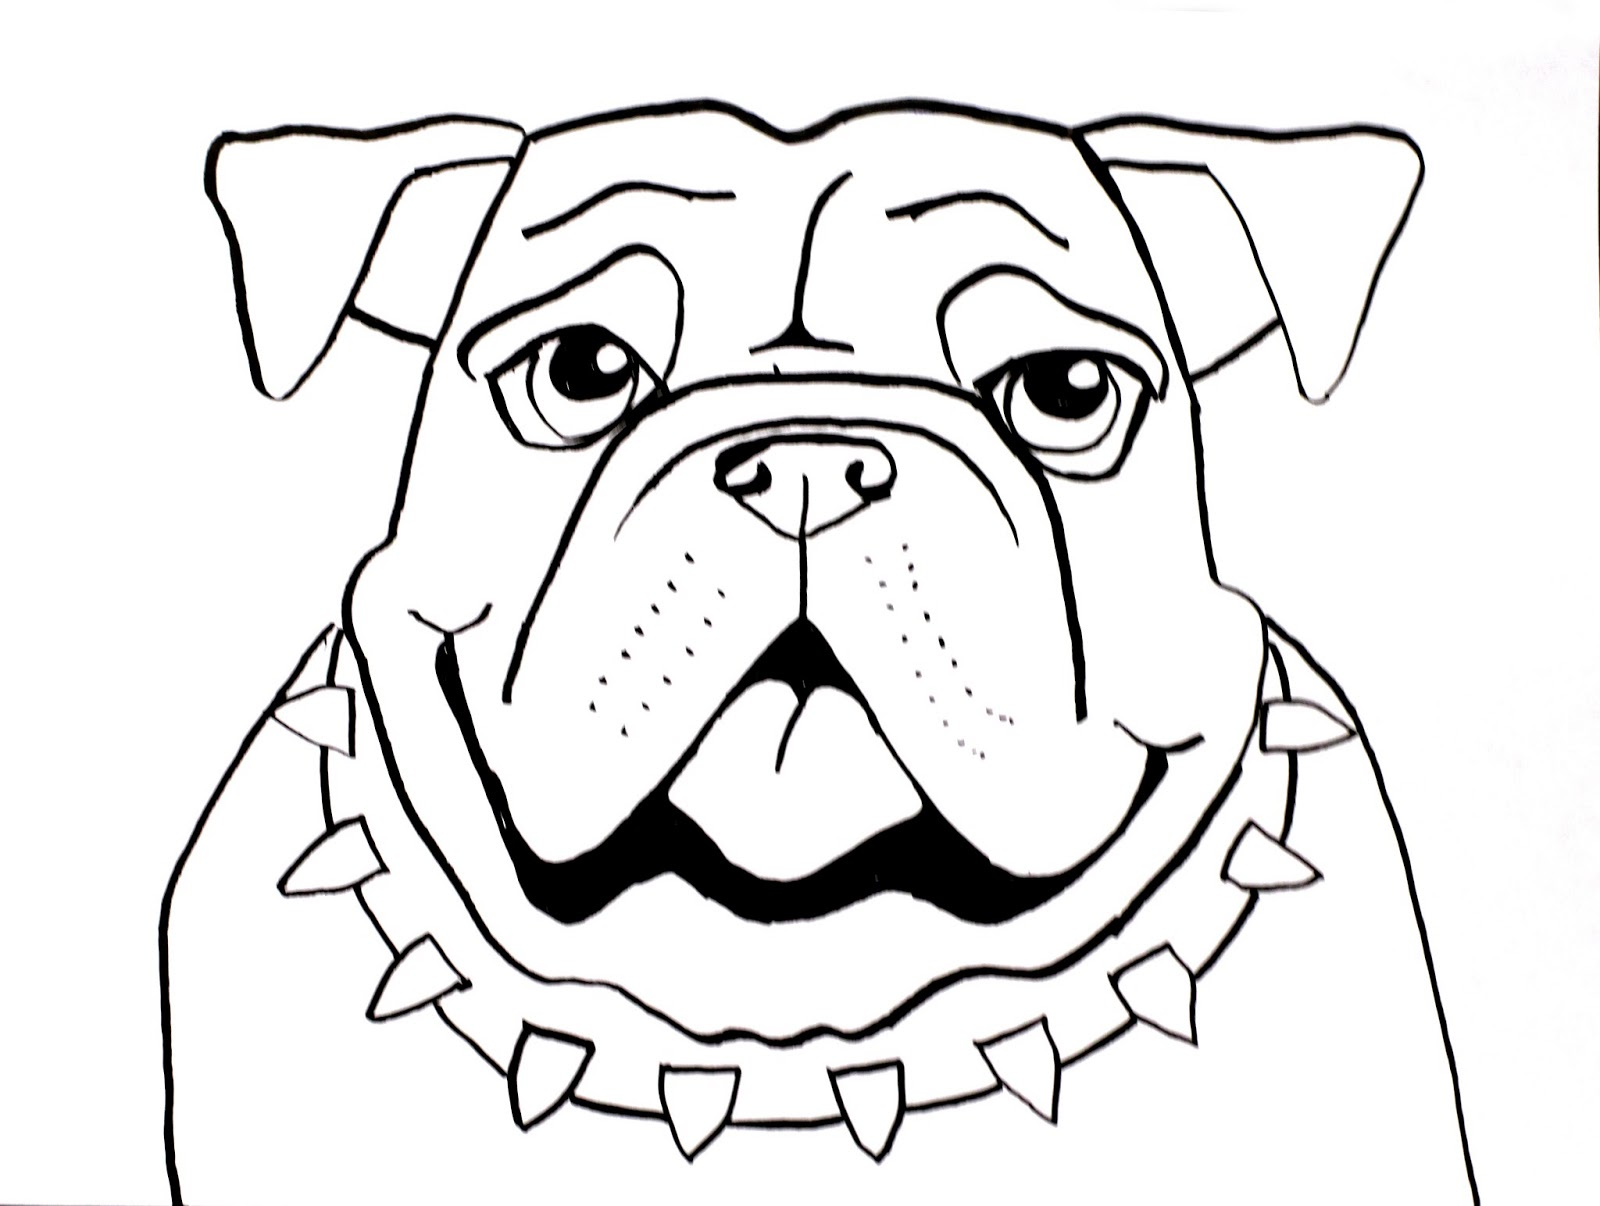 Smart class bull dog draw a long for Easy but cool things to draw